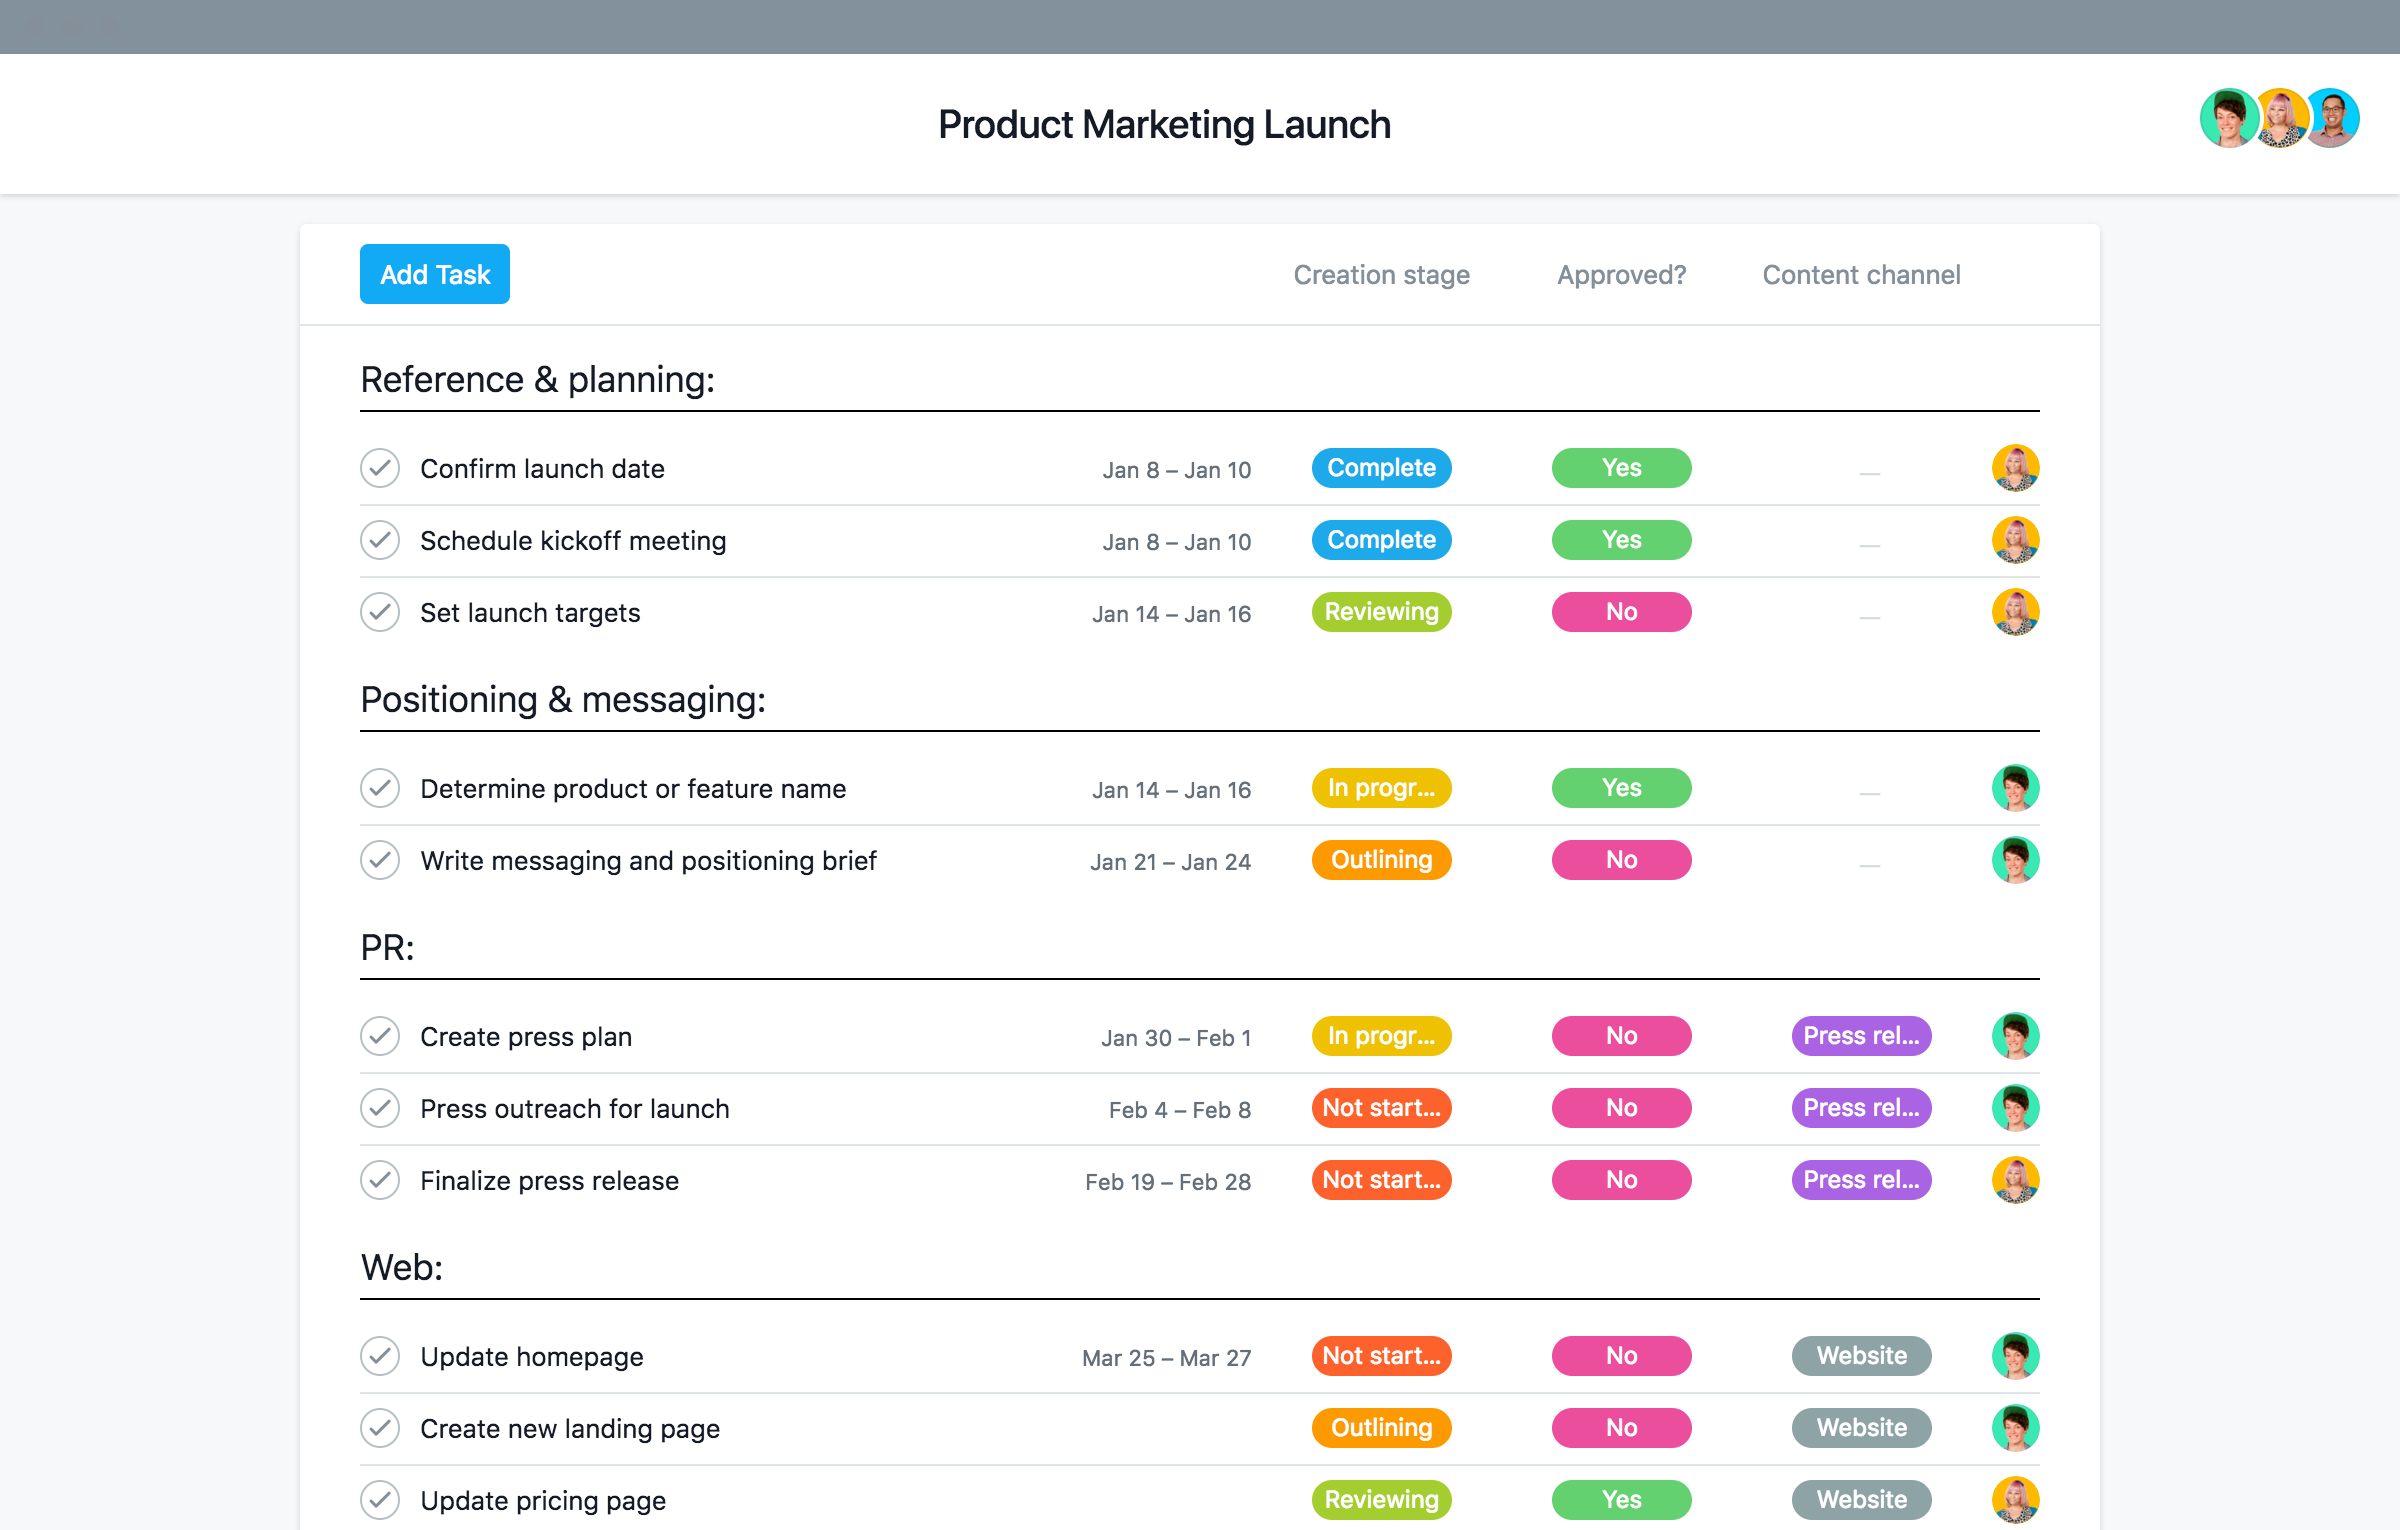 business launch plan template  Product launch plan template, tips, and examples · Asana - business launch plan template